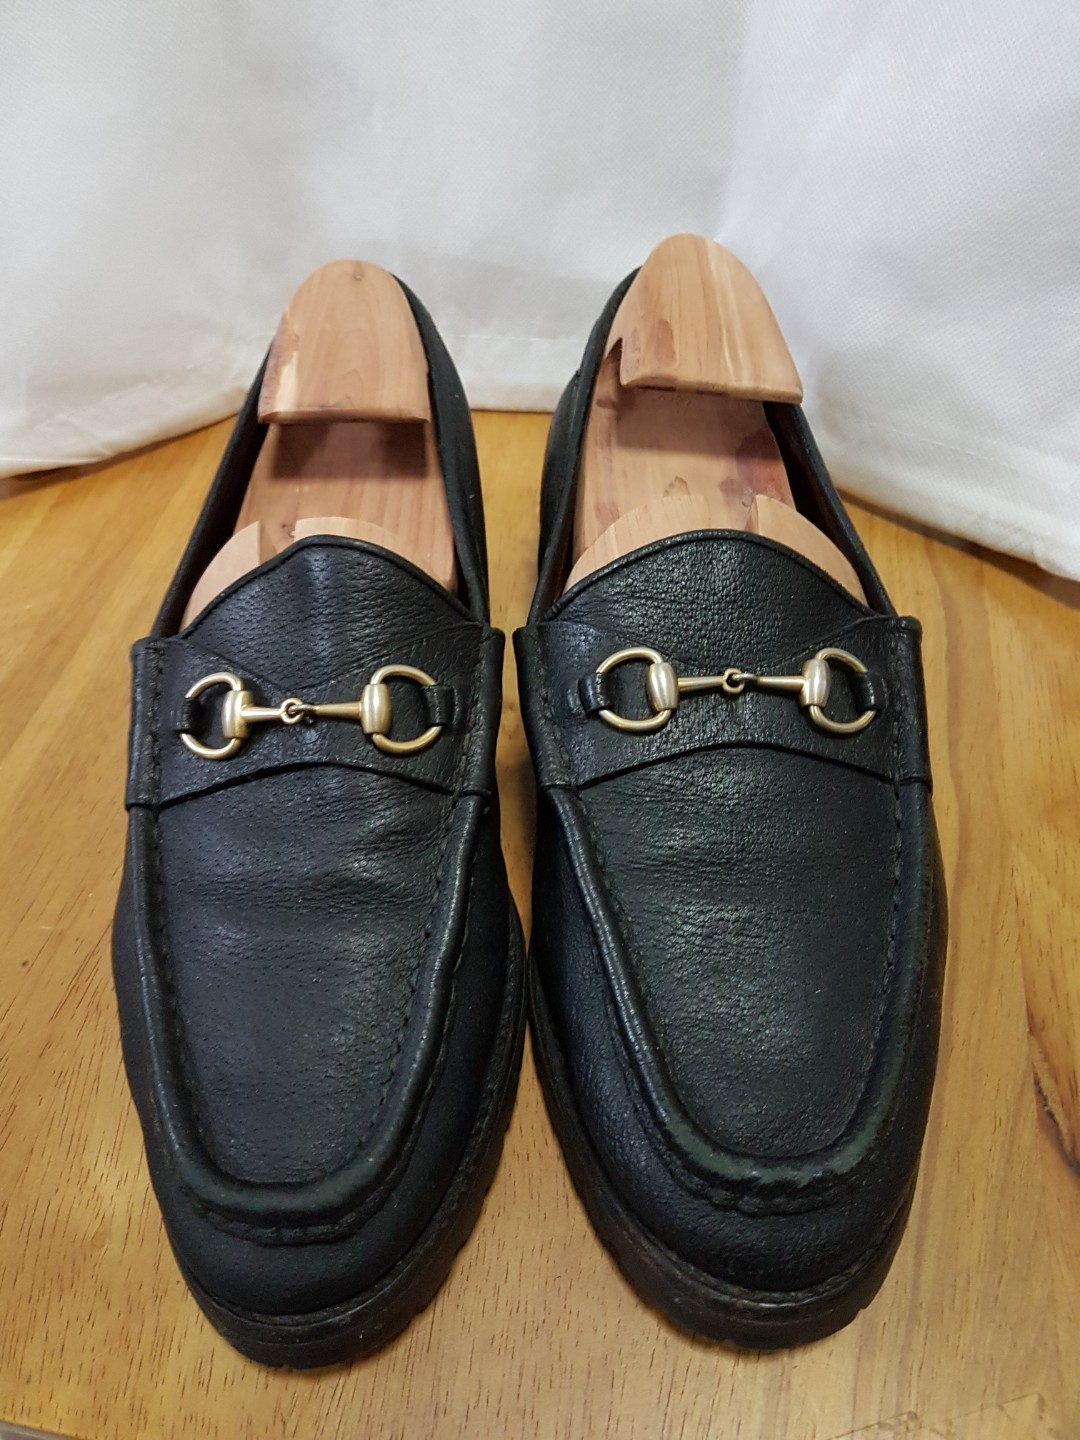 90fa67e9c Authentic Gucci loafer black vintage sz 8 US, Men's Fashion ...